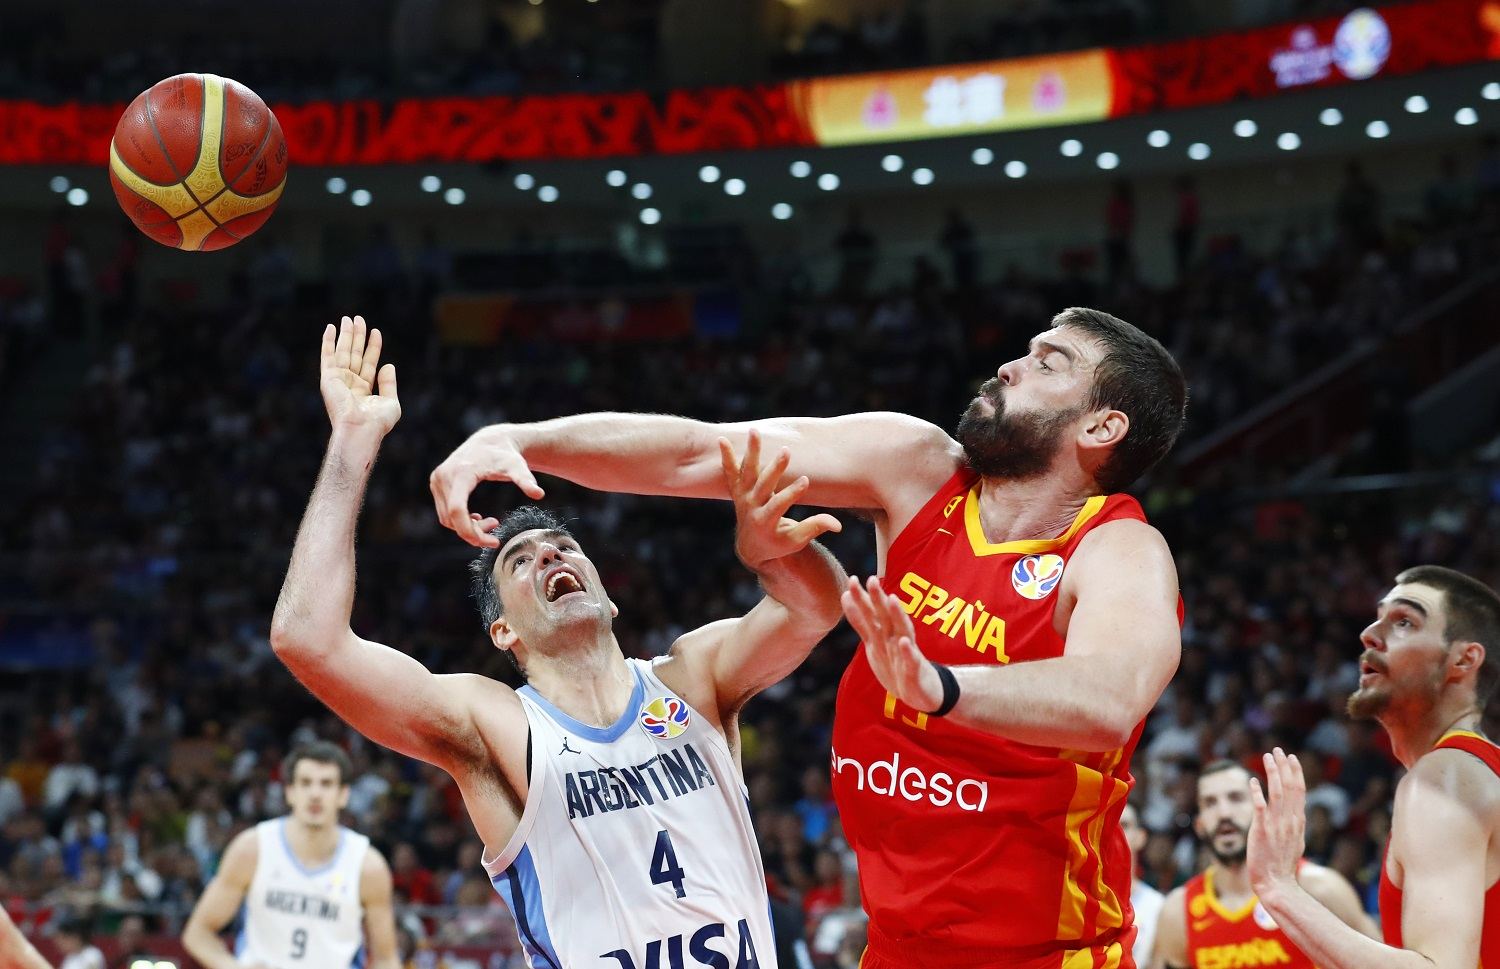 2019-09-15T132149Z_1922392380_UP1EF9F114D3V_RTRMADP_3_BASKETBALL-WORLDCUP-ARG-ESP